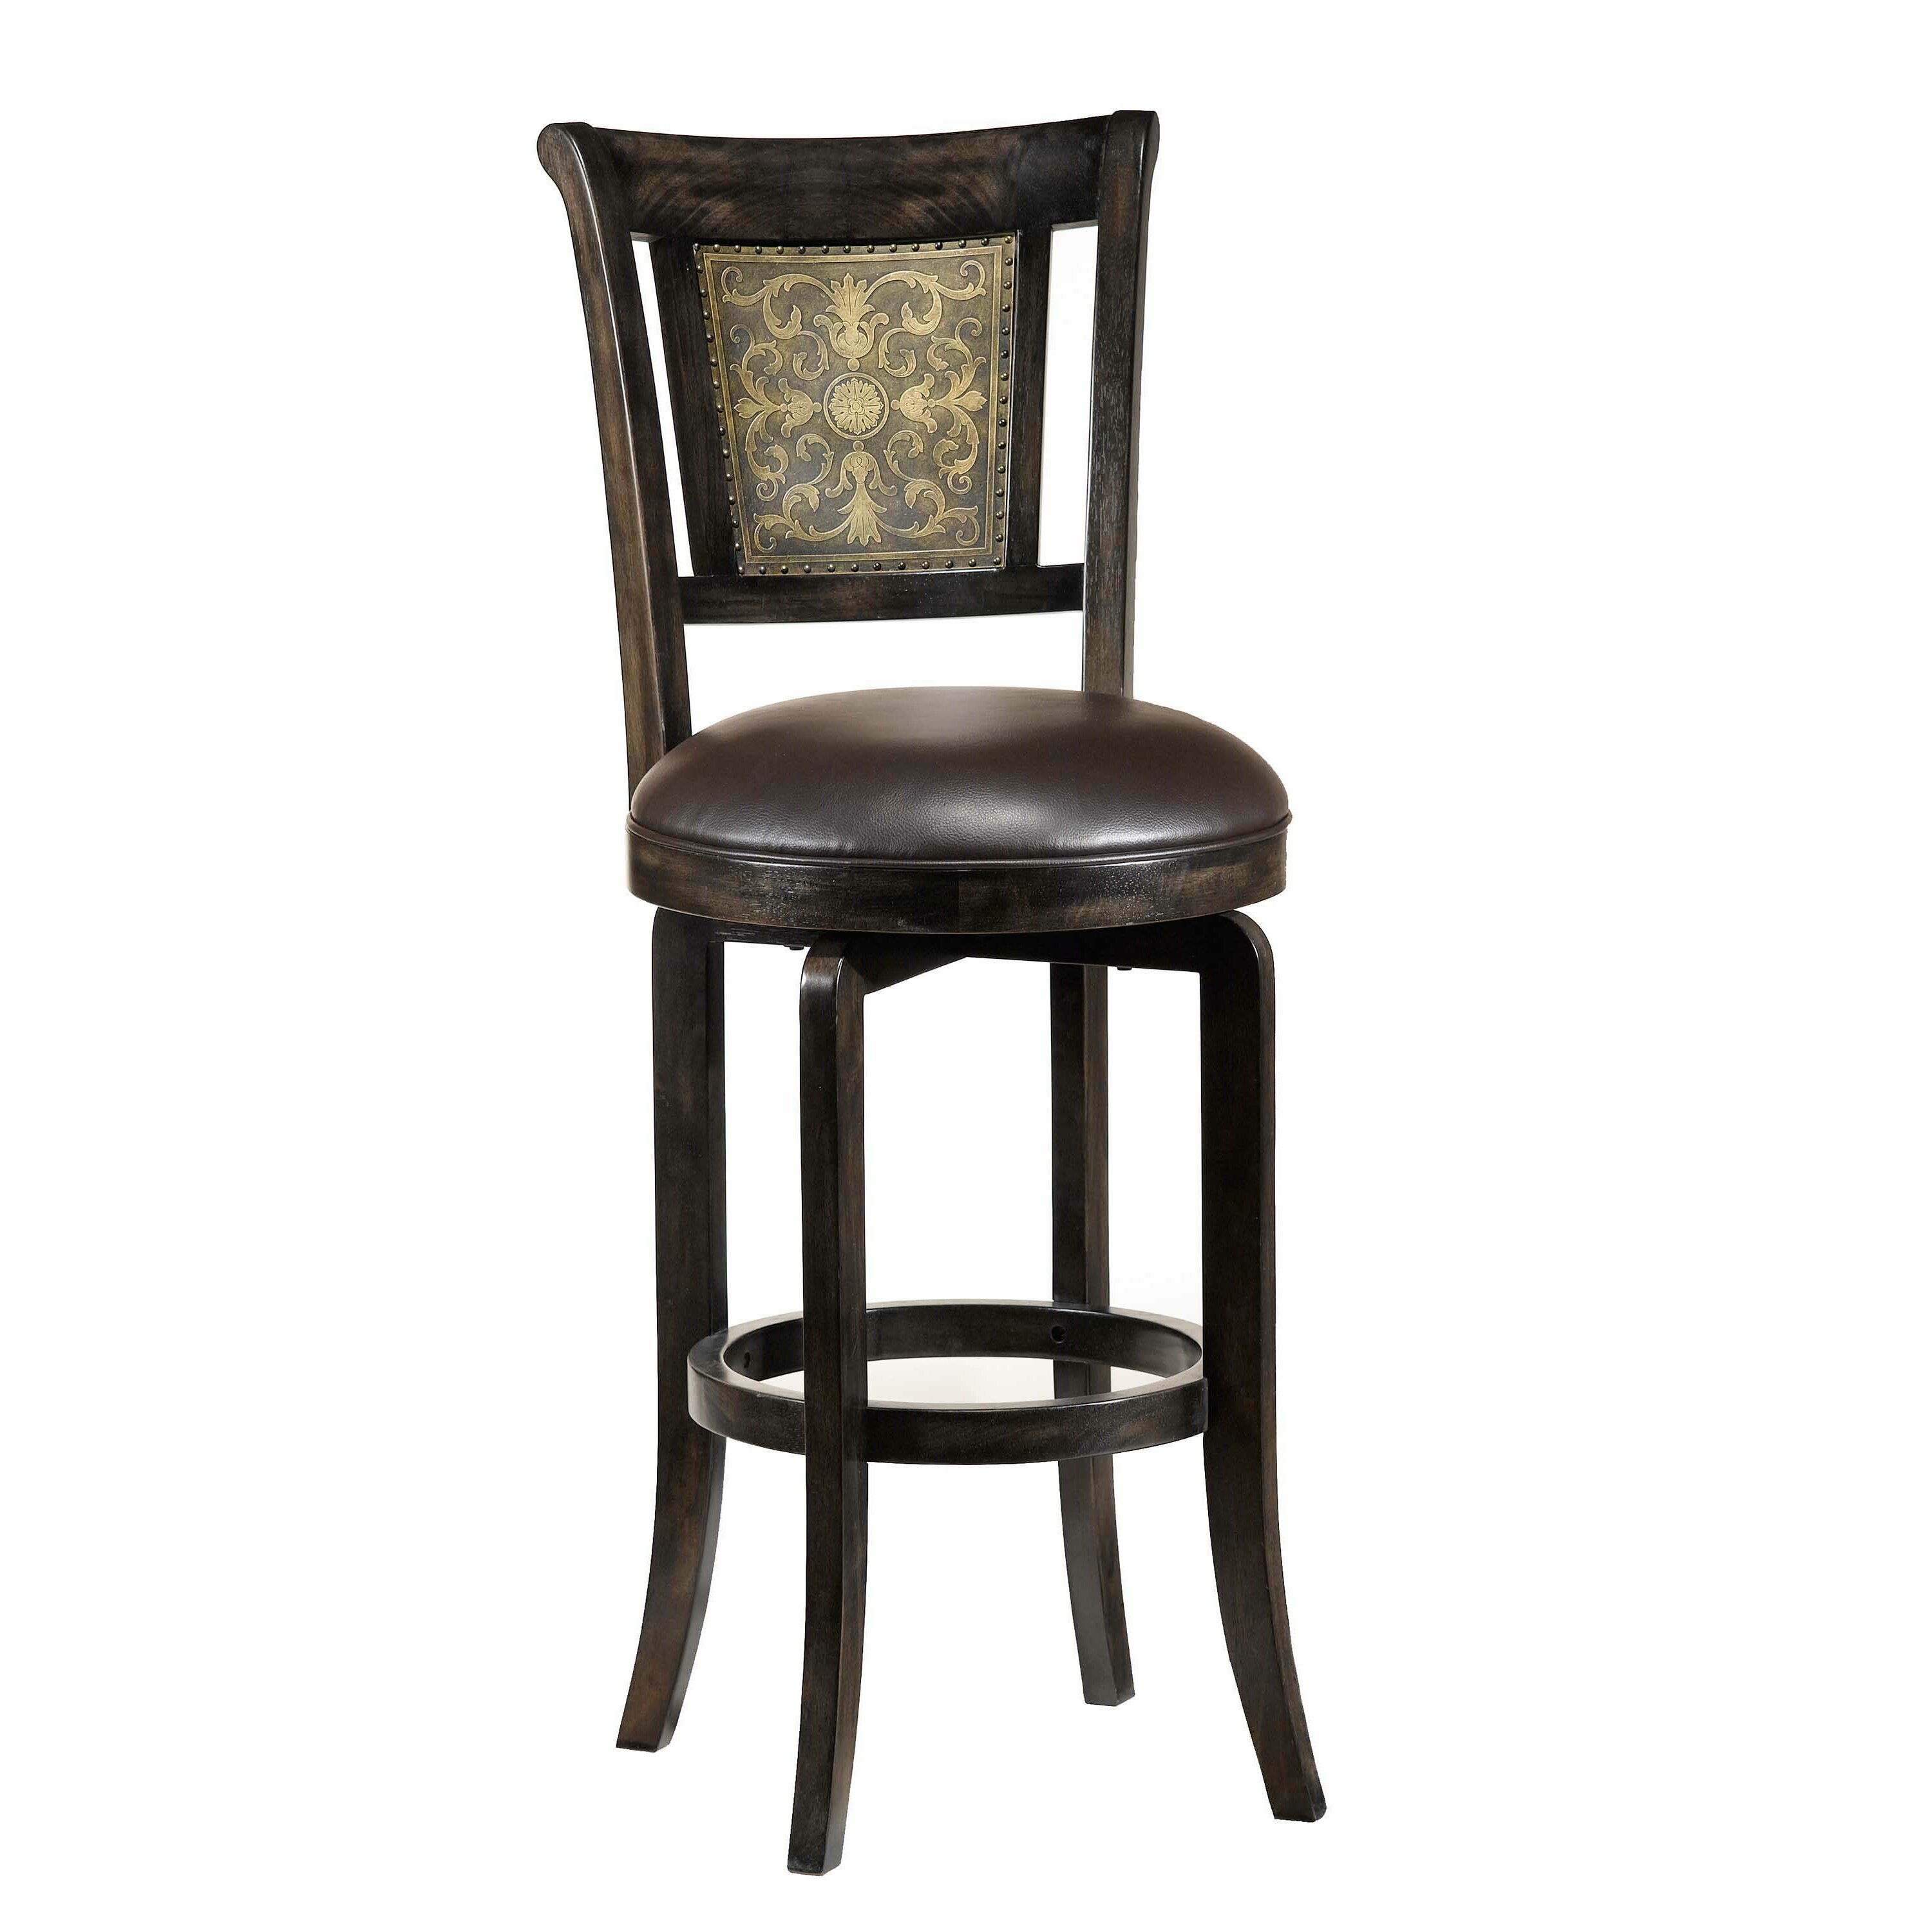 Hillsdale camille 26 5 swivel bar stool reviews wayfair for Furniture 2 day shipping